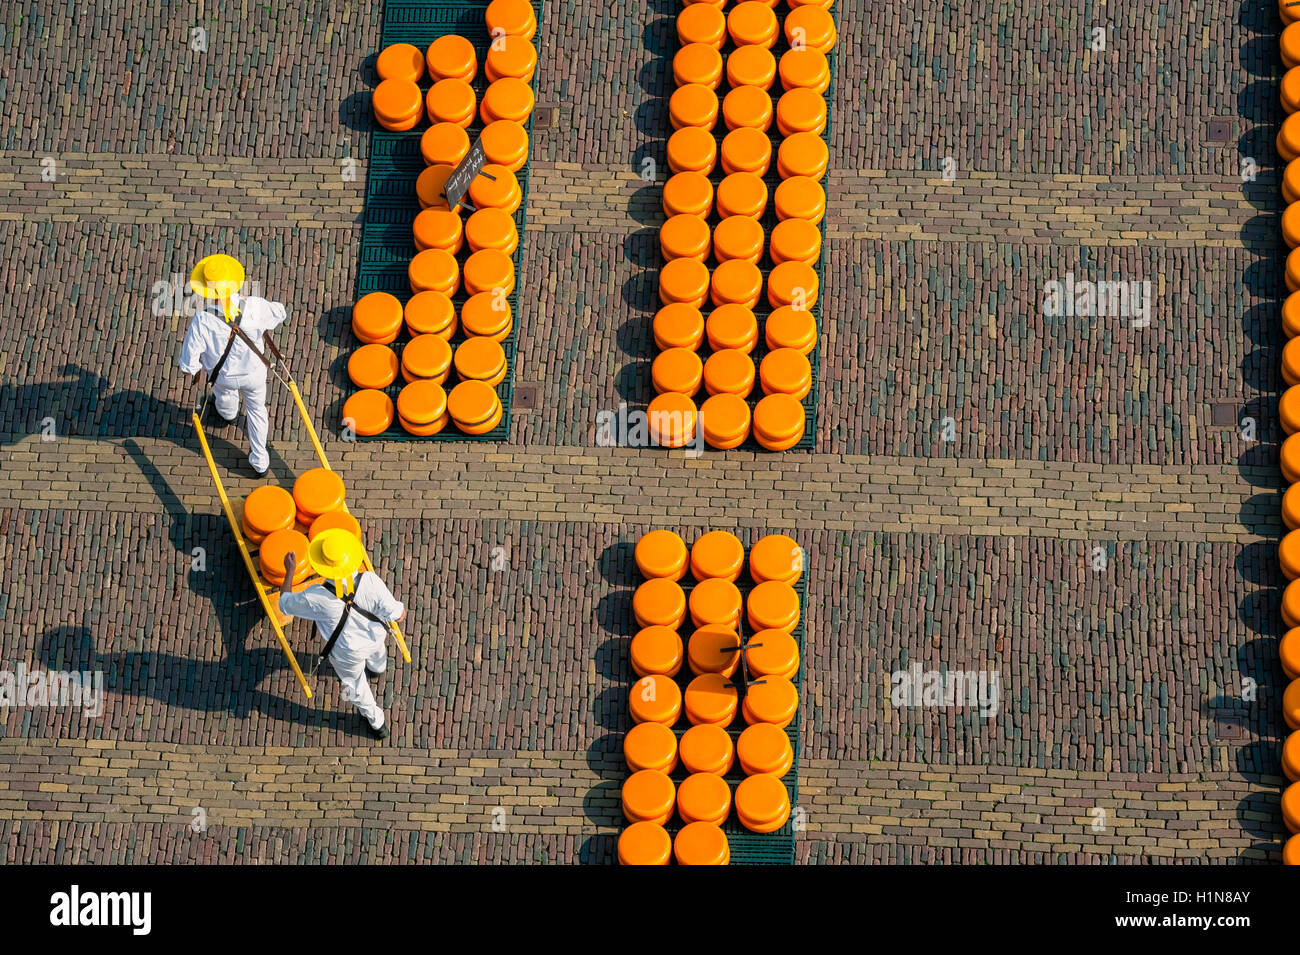 Carriers at Alkmaar cheese market, seen from above - Stock Image